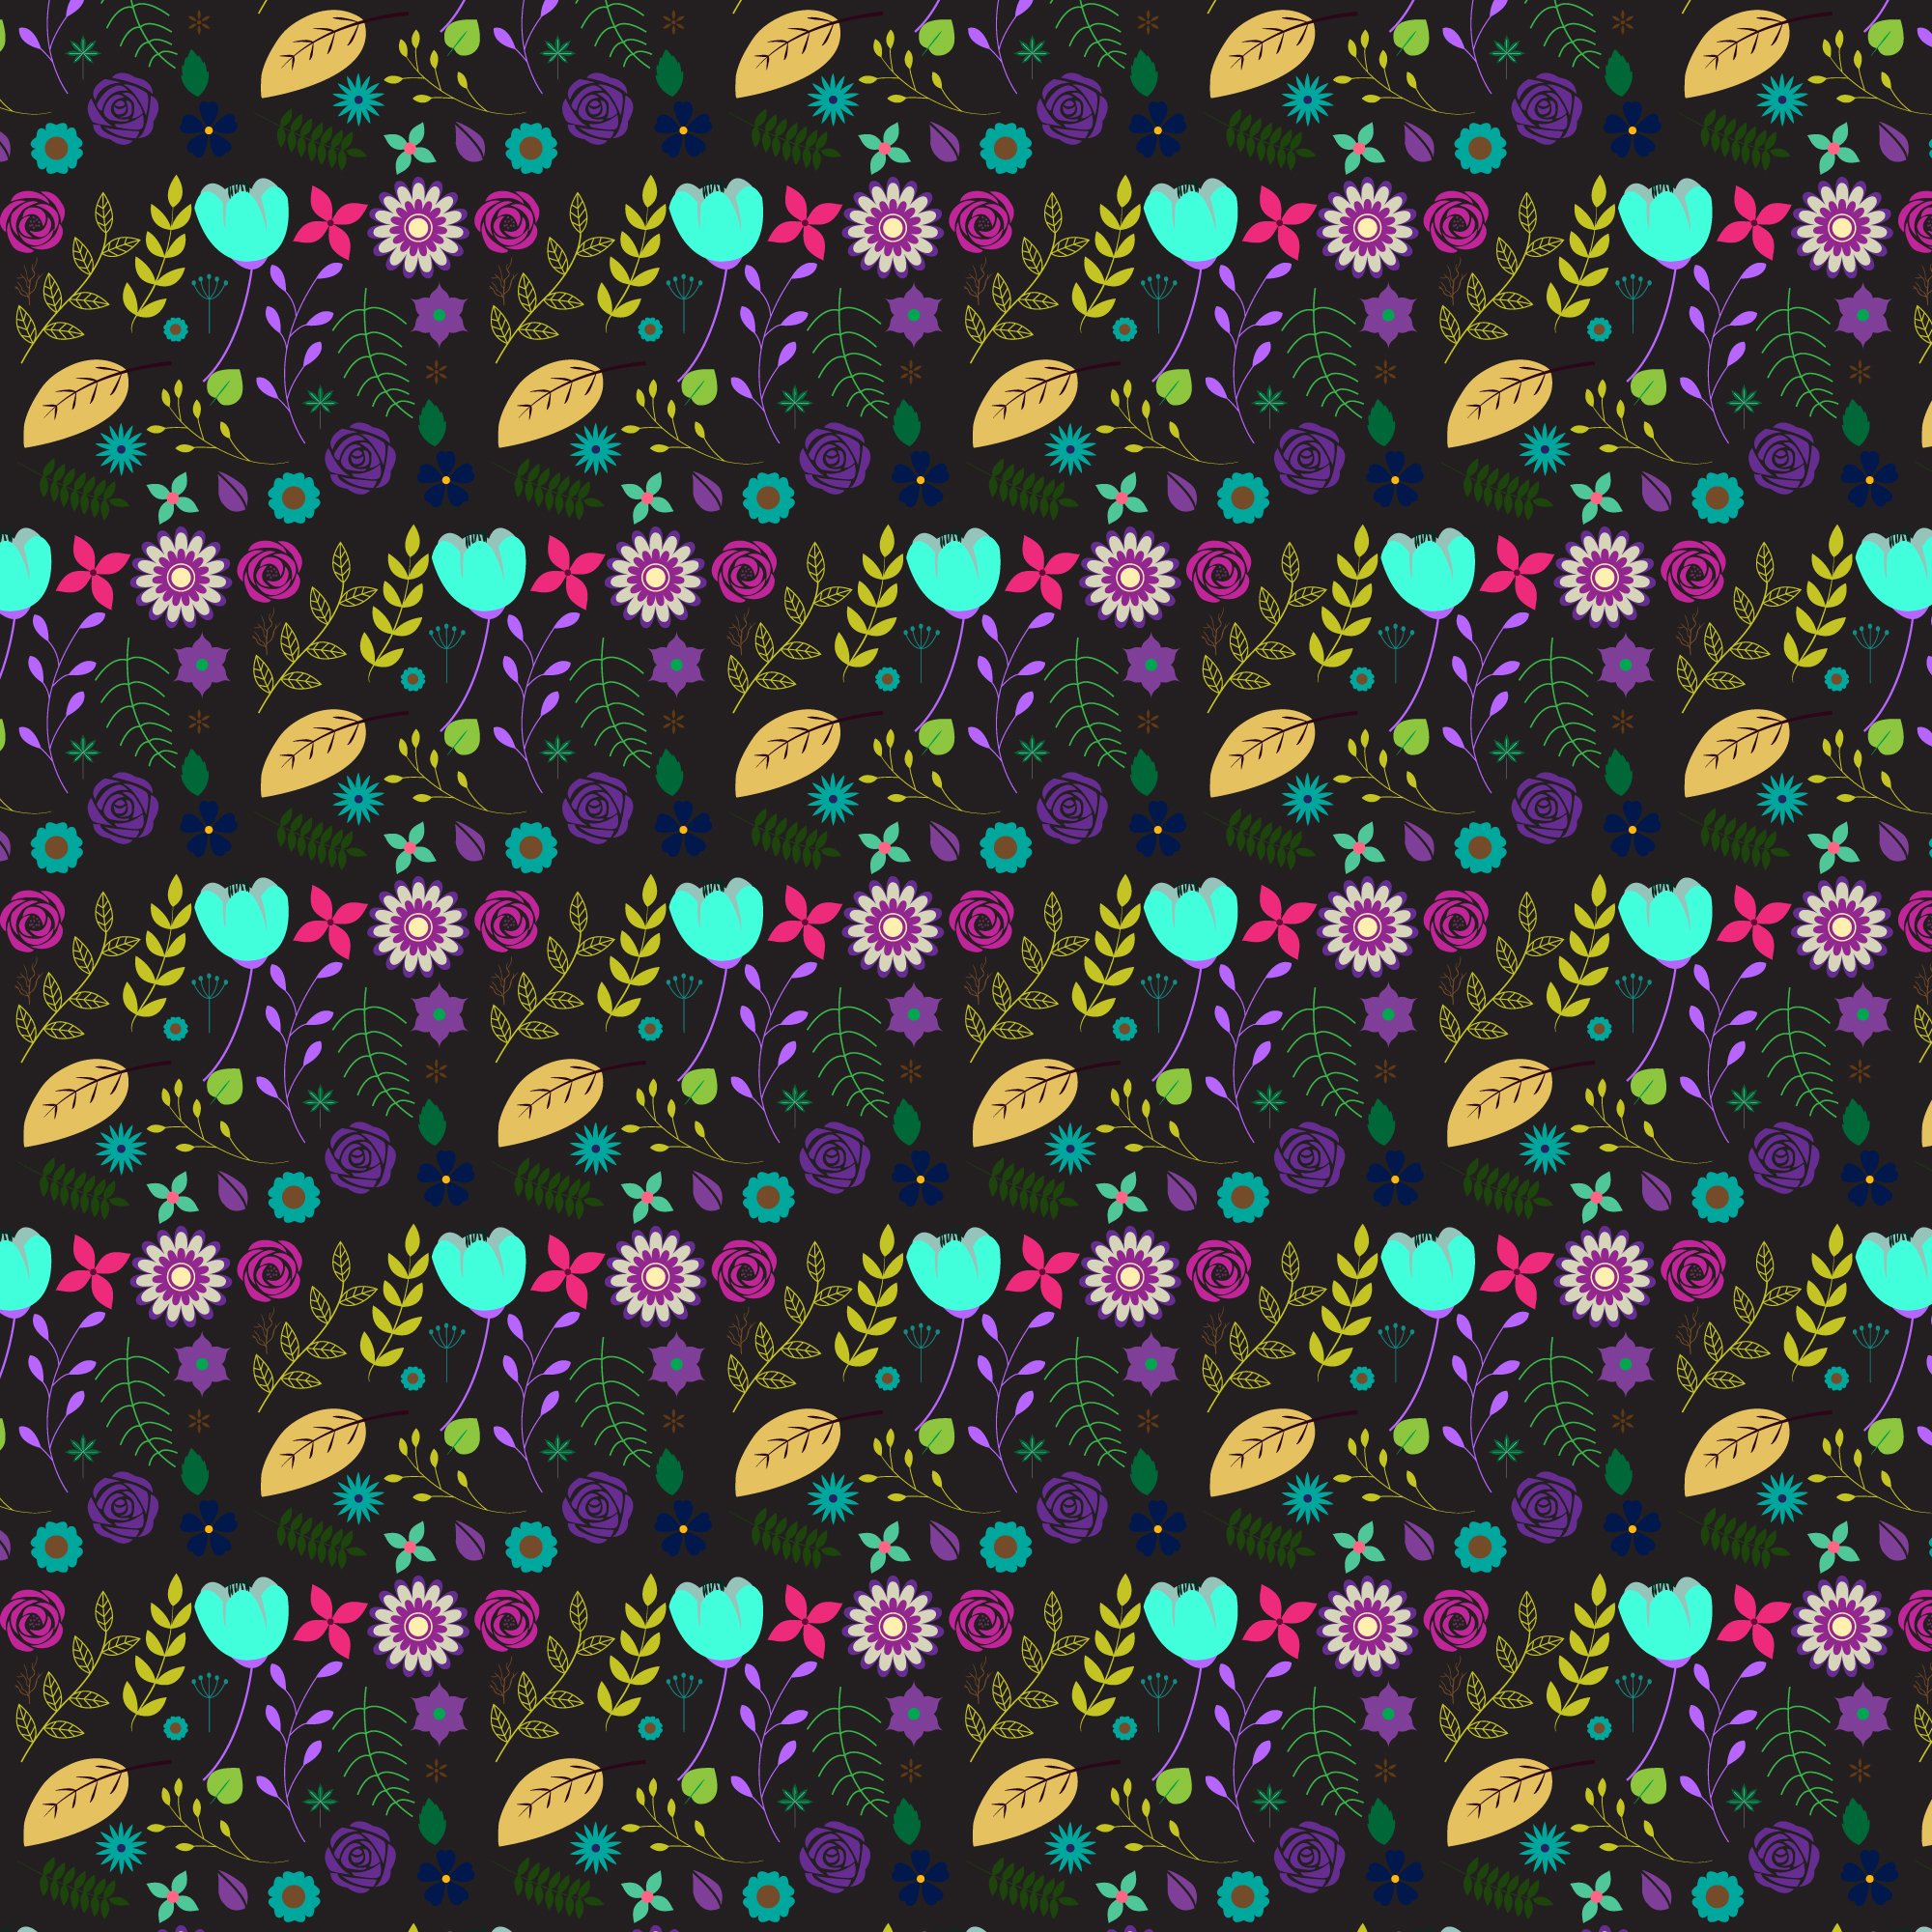 Floral pattern with black background